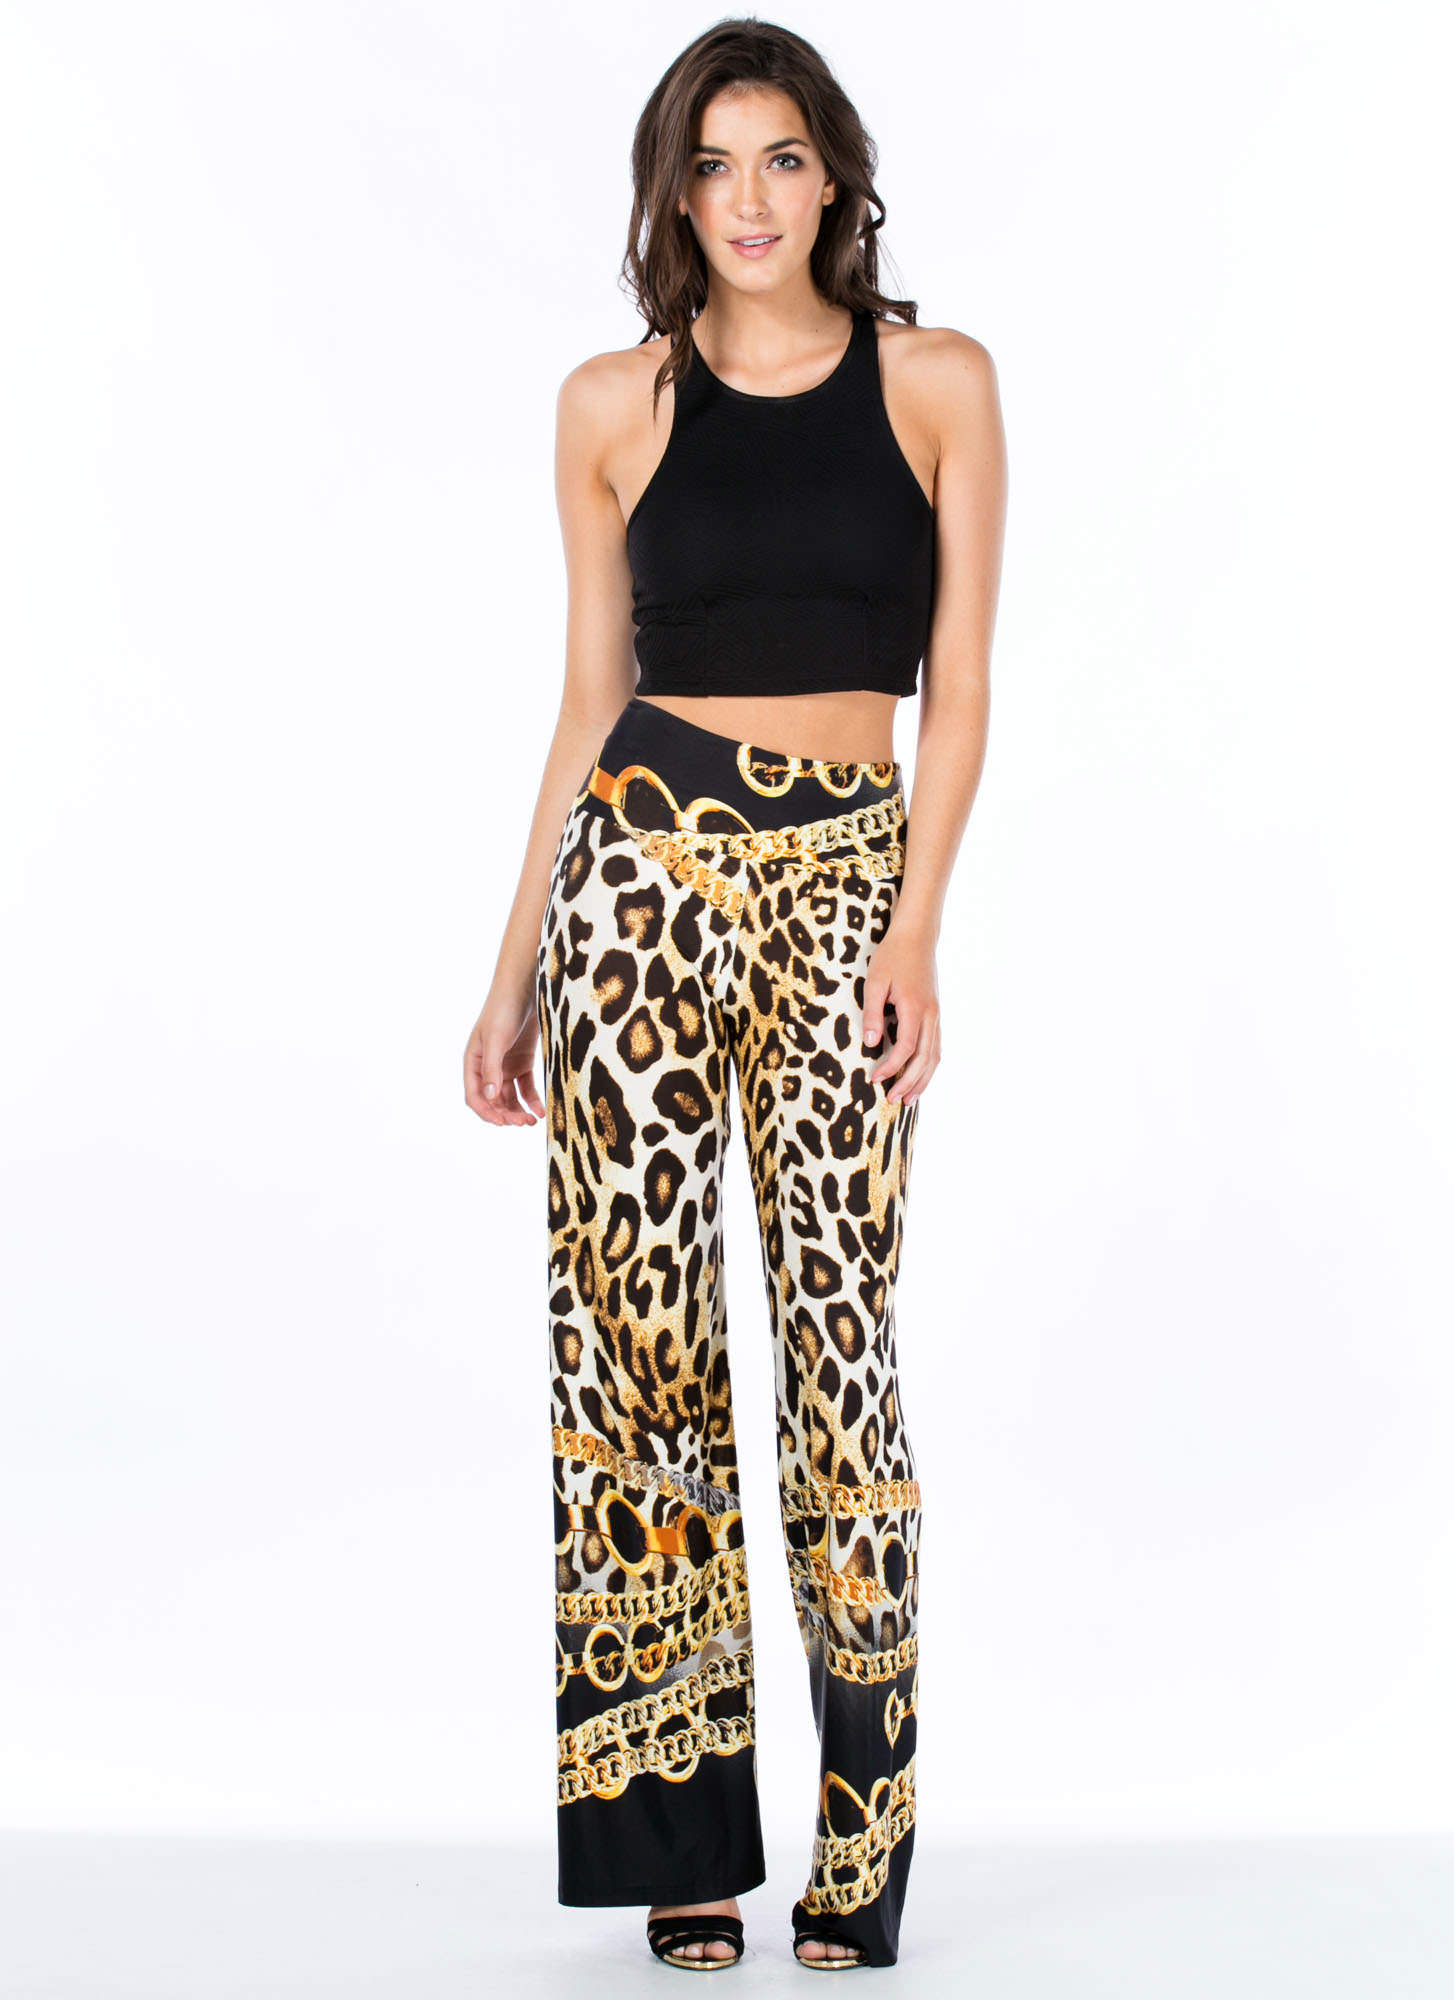 Chained Animal Leopard Palazzo Pants BLKGOLD